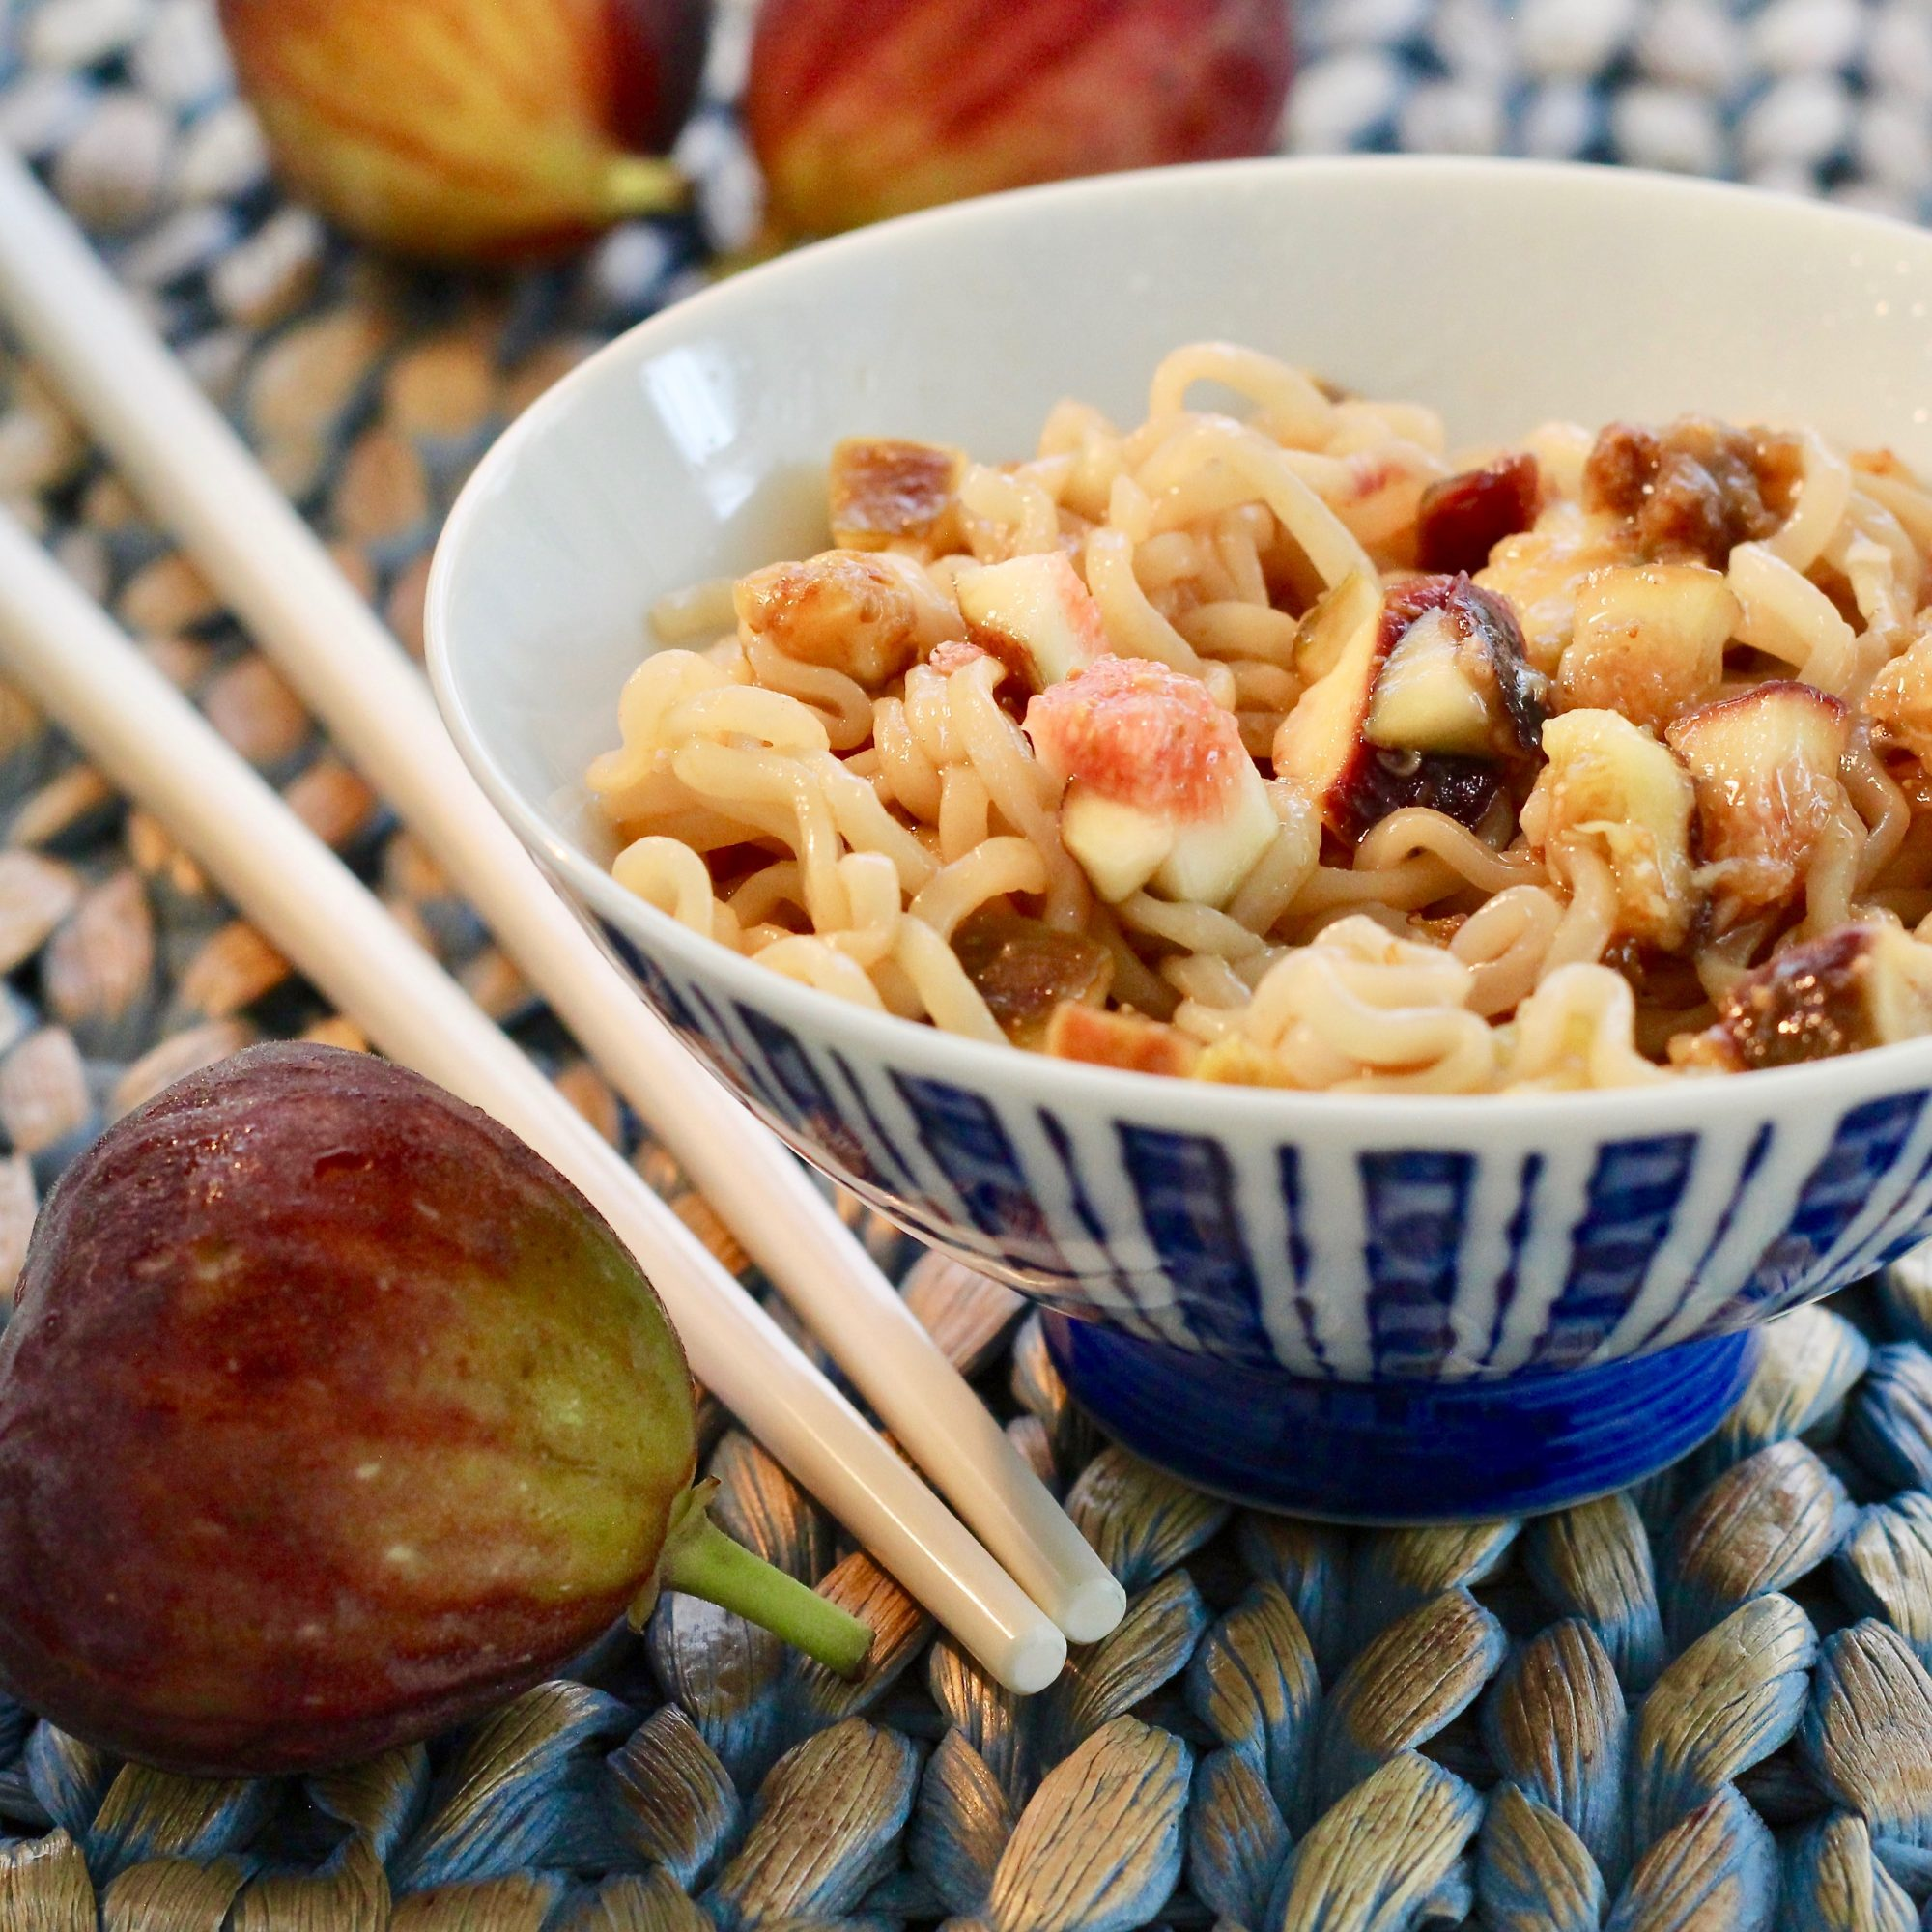 ramen noodles with fresh figs and chopsticks